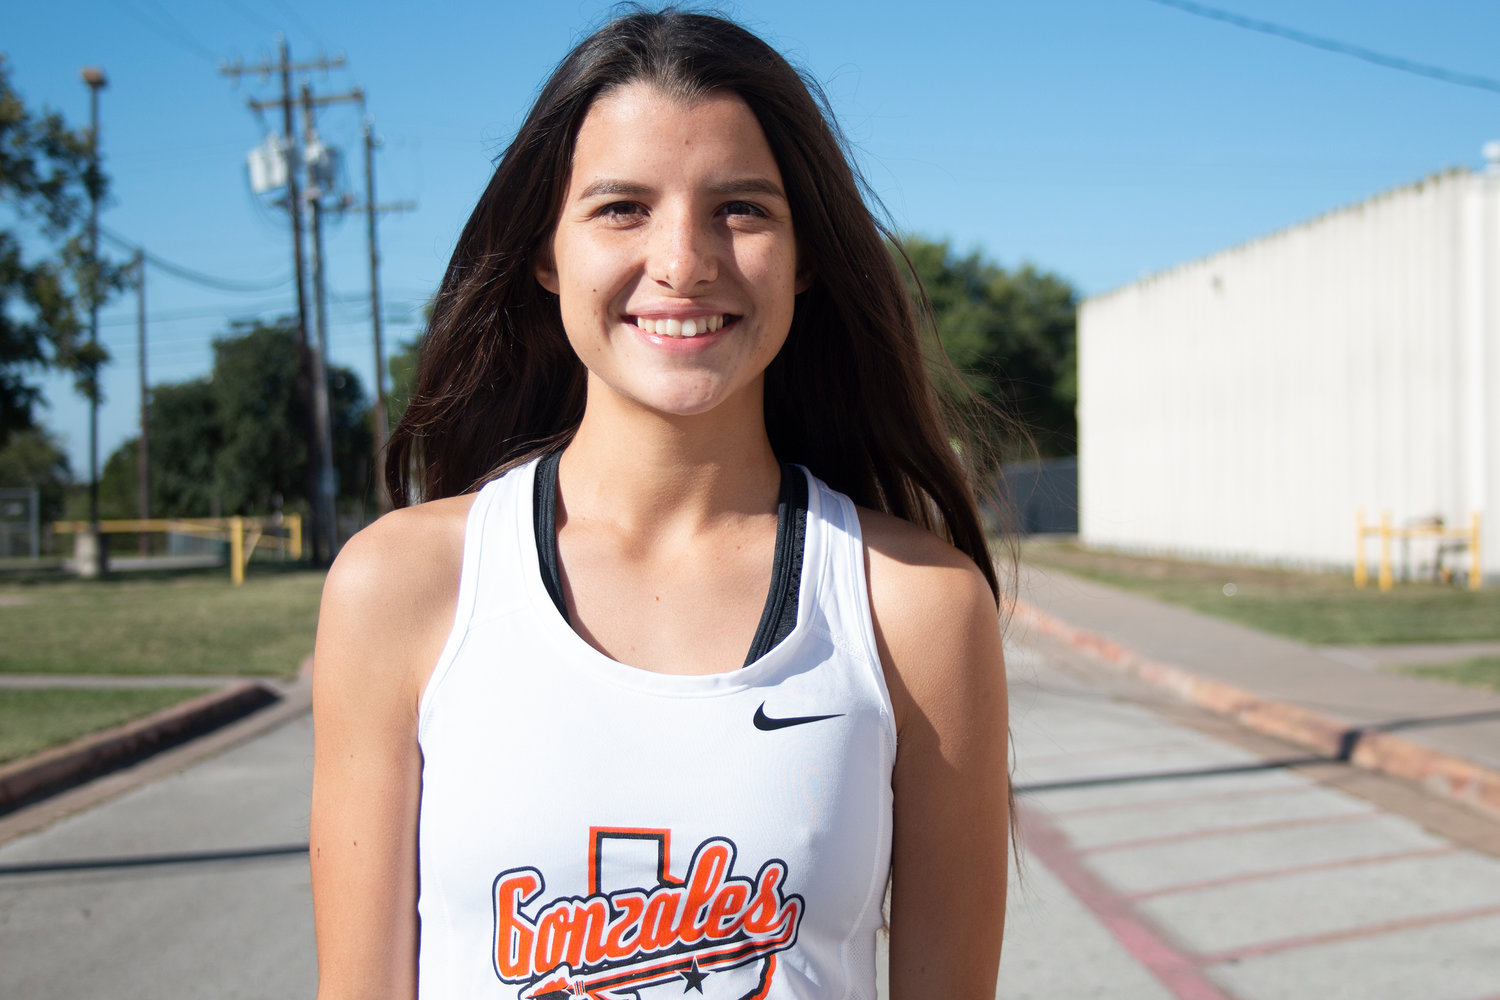 Veronica Moreno has her eyes set at a top-10 finish at the UIL Class 4A Girls Cross-Country state meet.